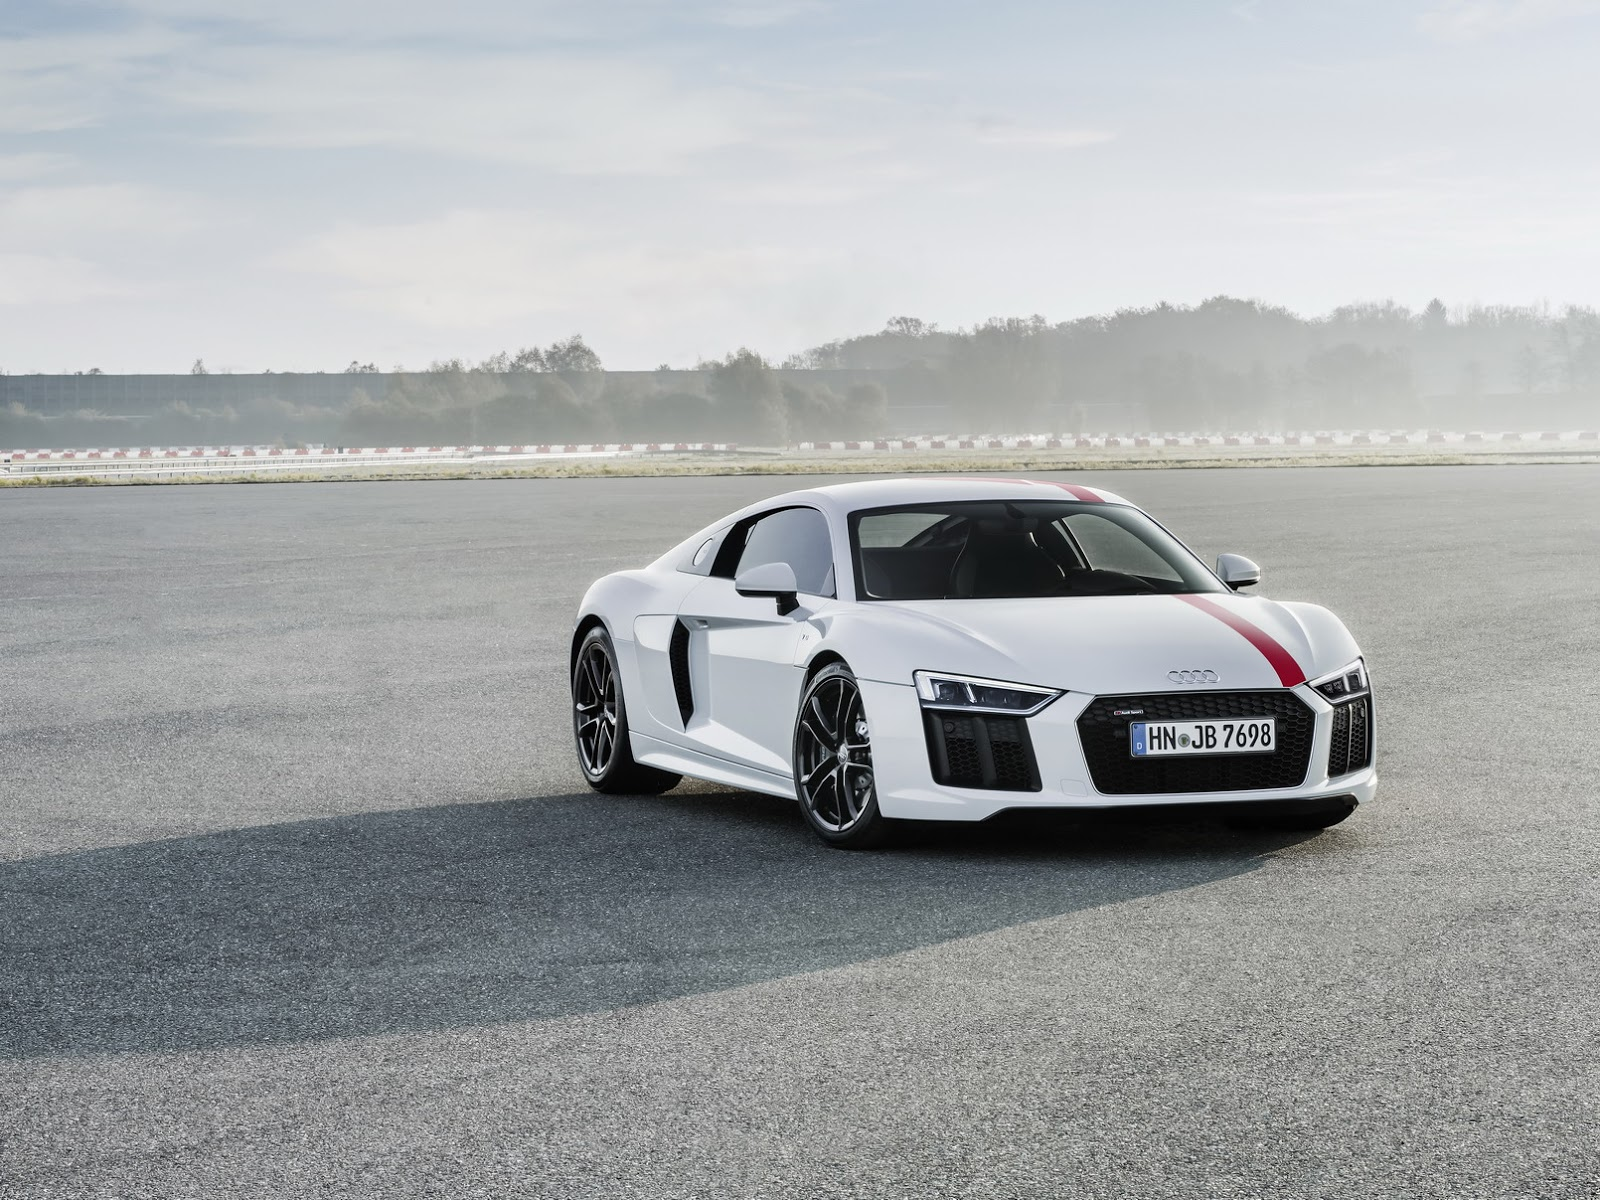 2018 audi r8 rws tries to tempt drivers with rwd at. Black Bedroom Furniture Sets. Home Design Ideas